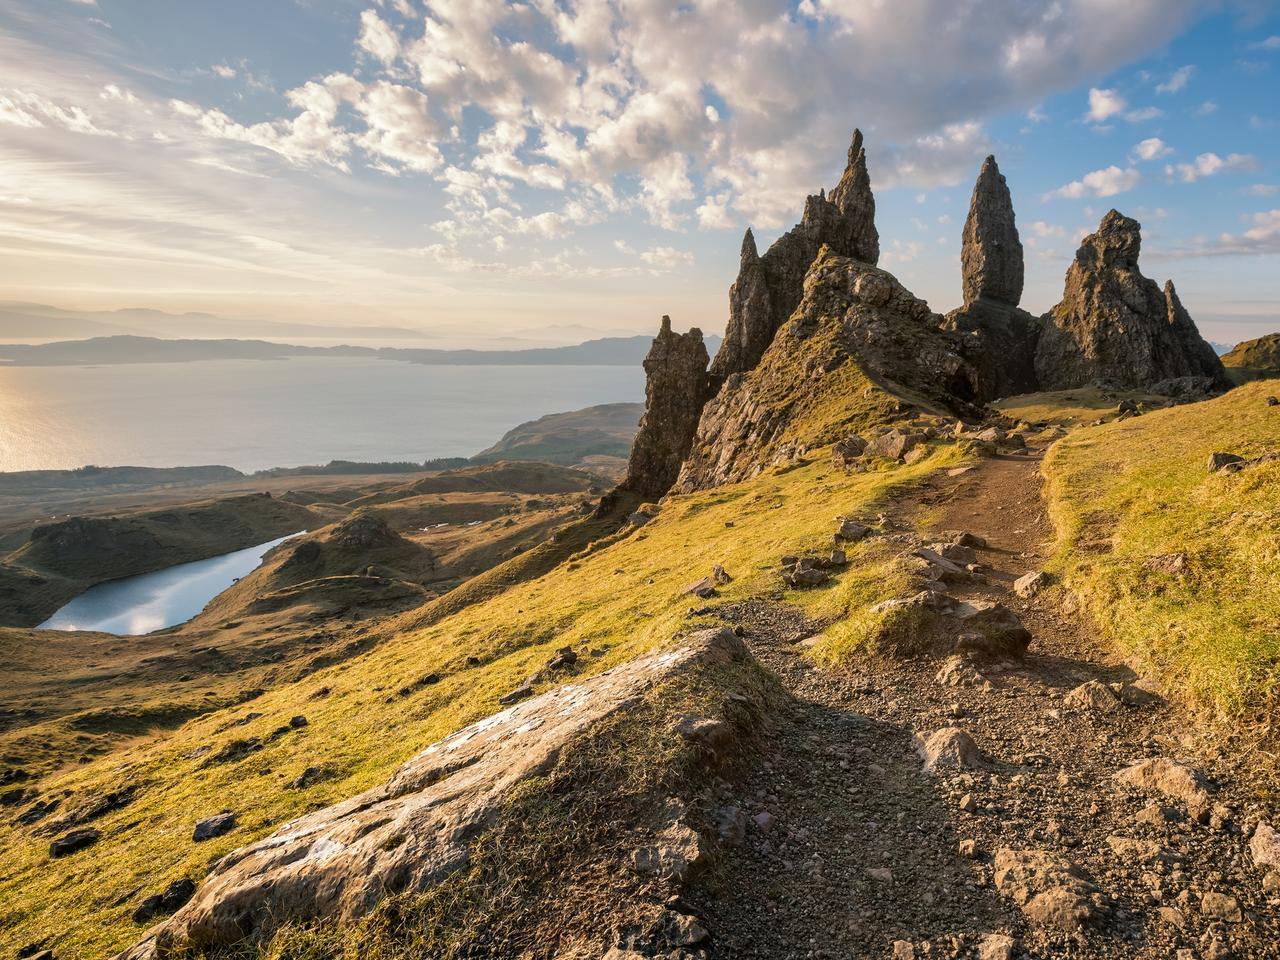 Isle of Skye, Scotland. The Old Man of Storr at sunrise